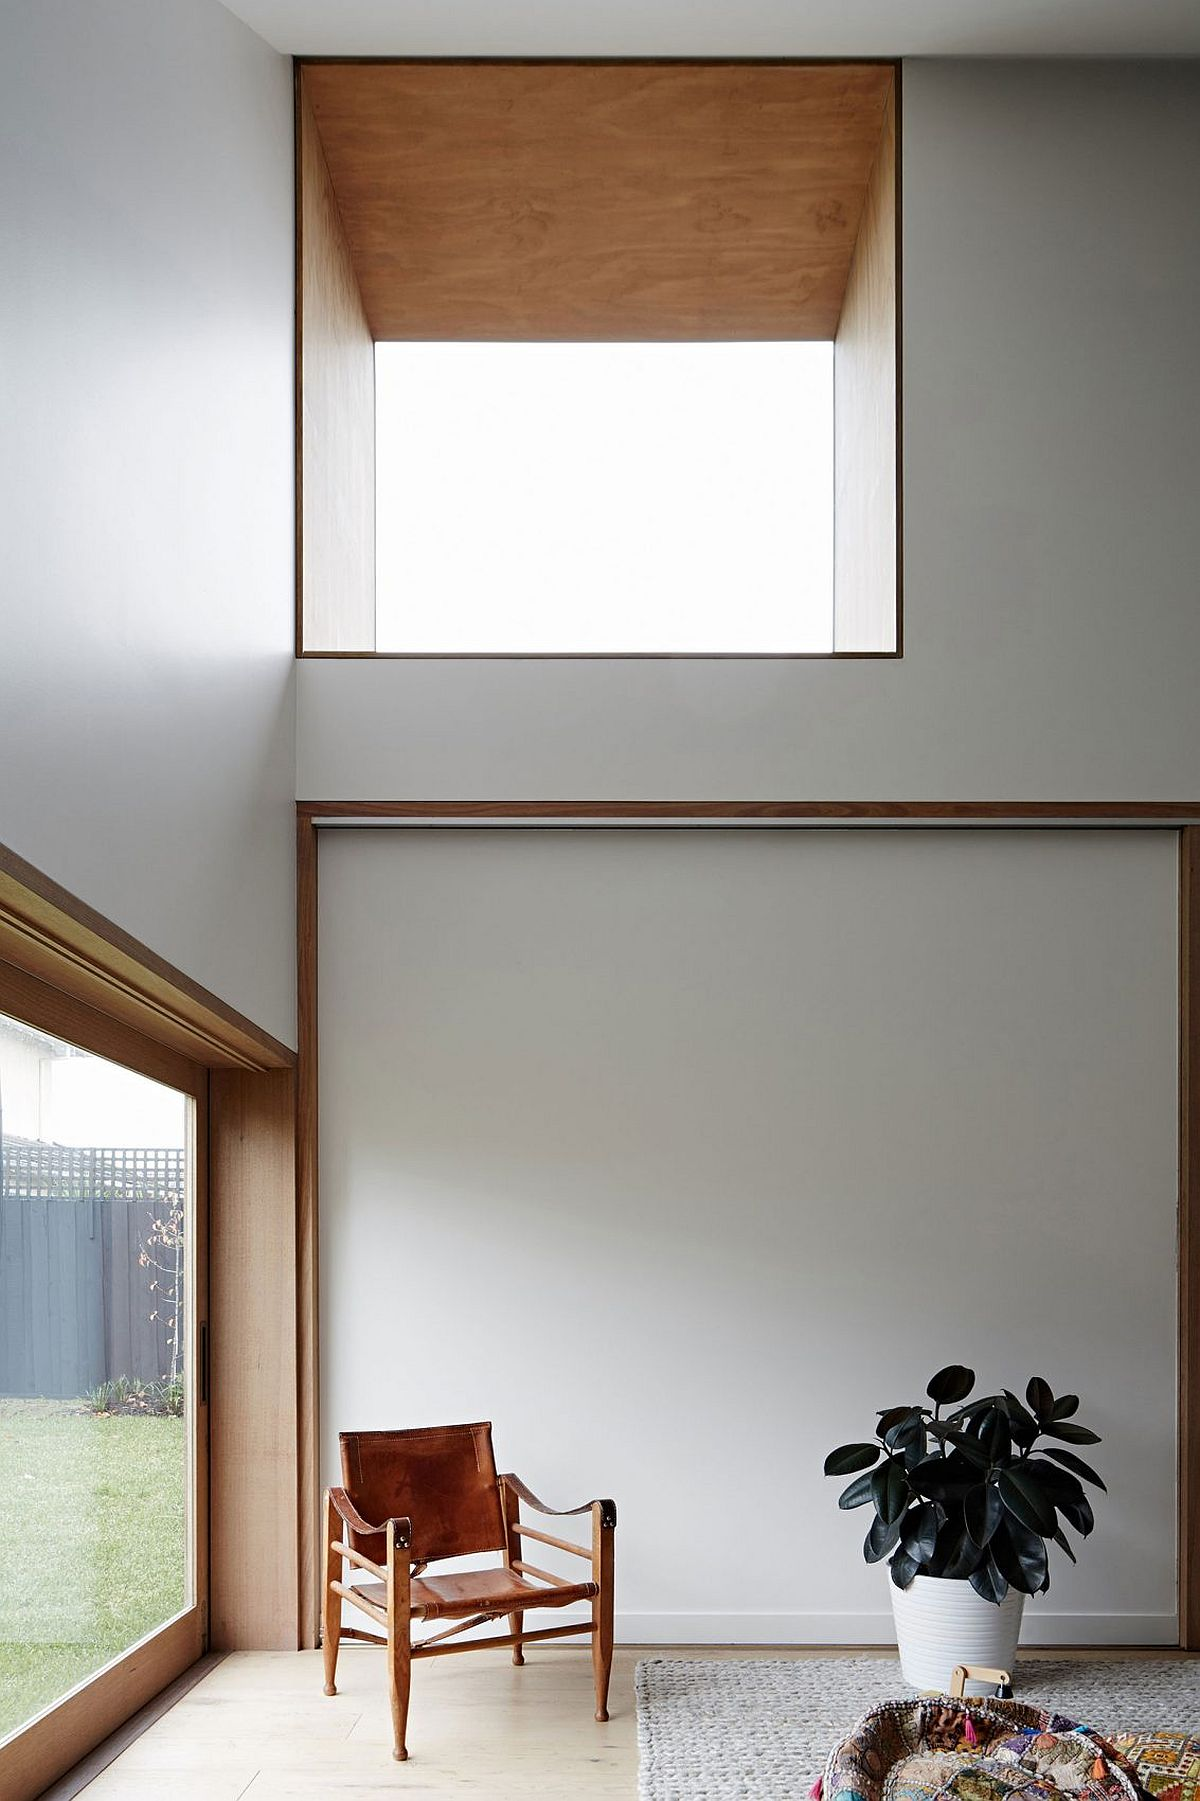 Sliding doors and high windows bring in ample natural light